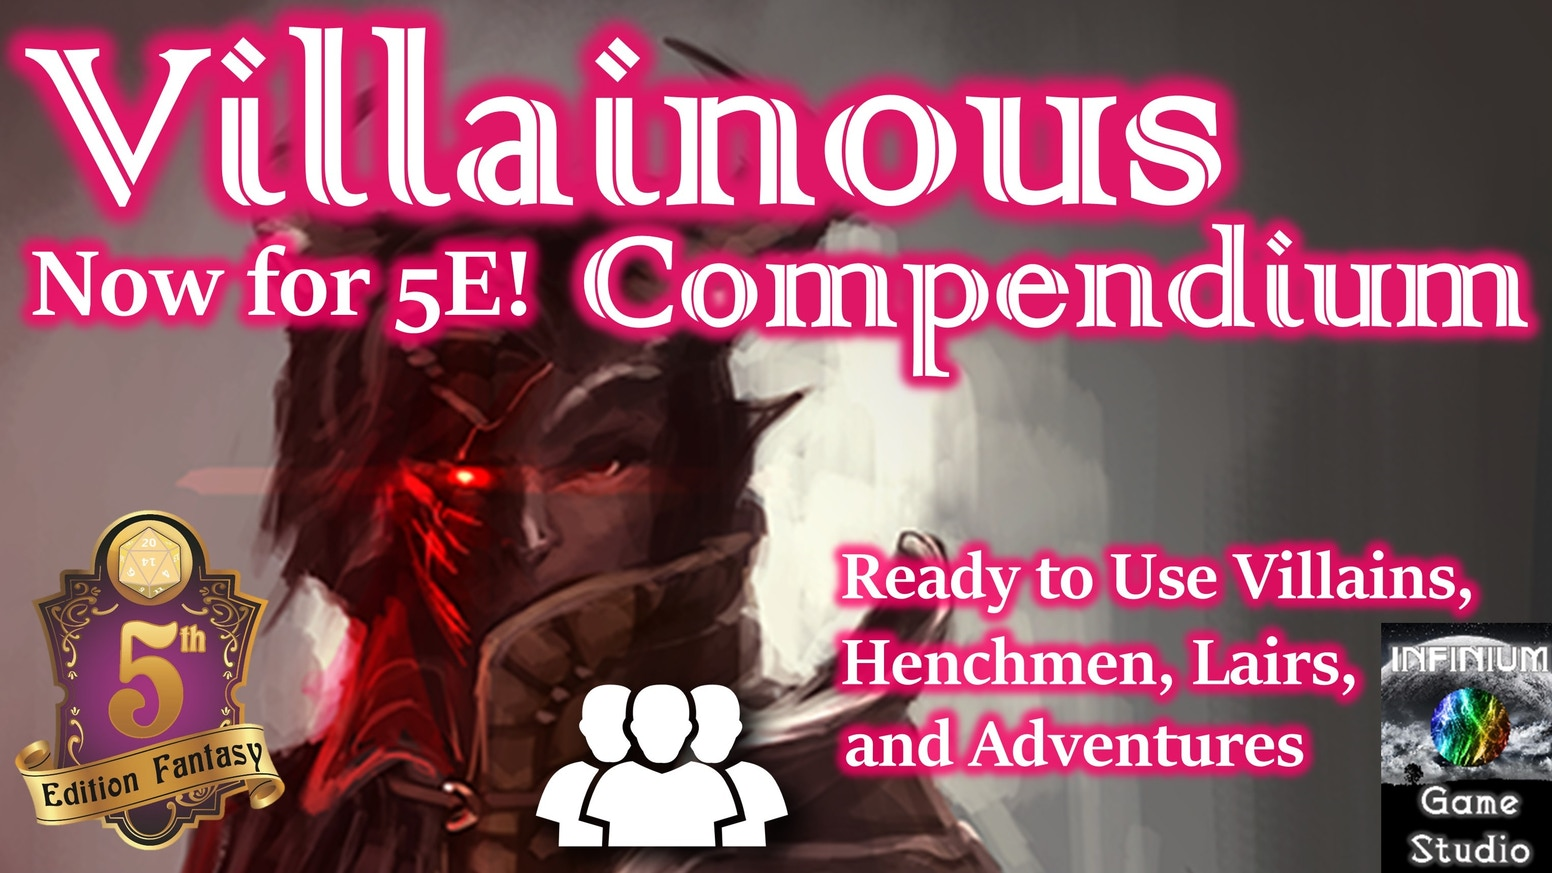 Villains, henchmen, lairs, and entire adventures ready to use in any Pathfinder or 5E campaign setting, supporting any challenge level.